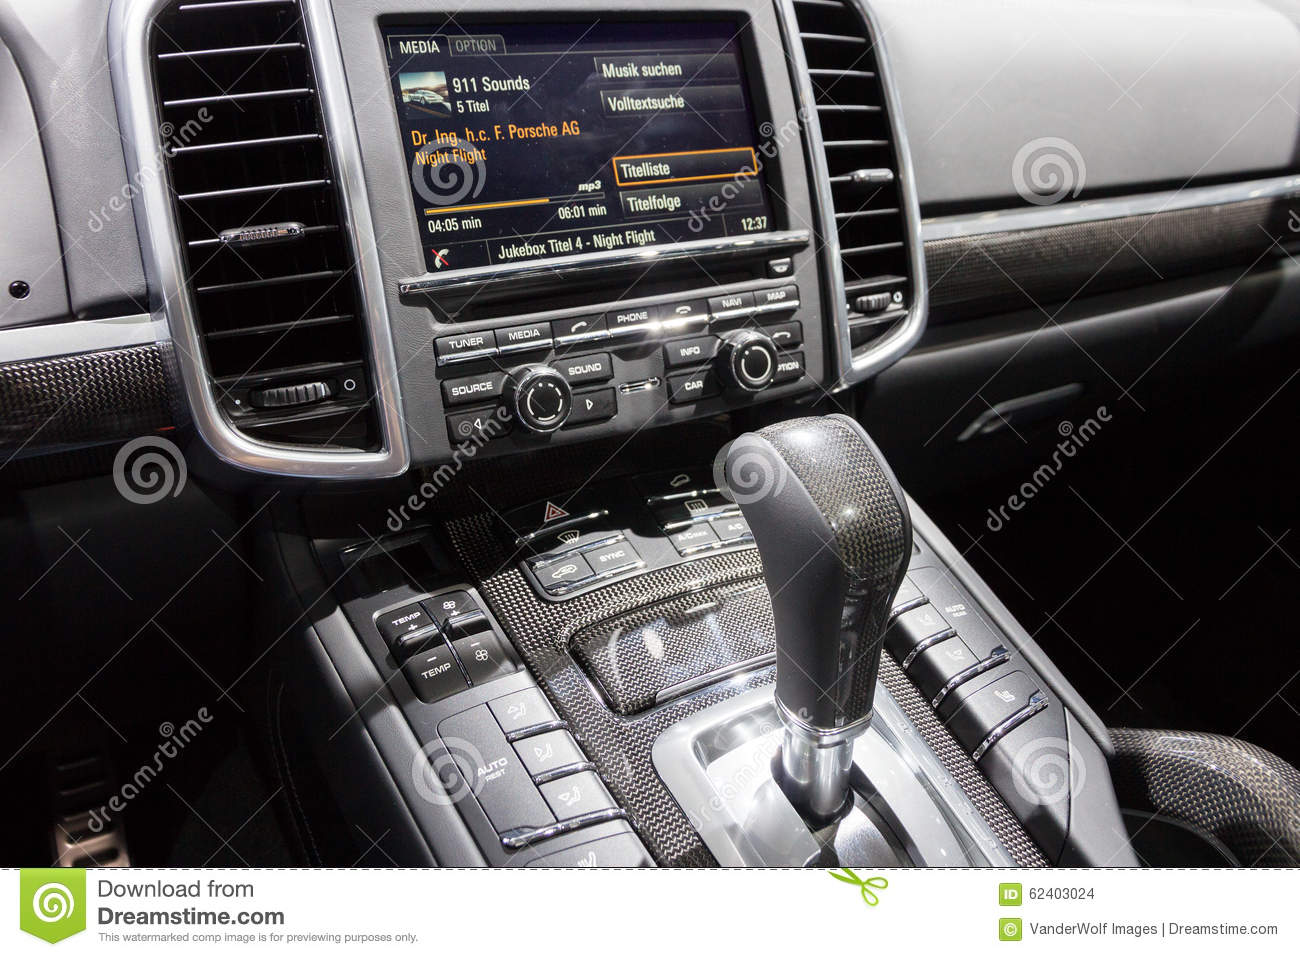 Porsche Cayenne Gts Editorial Stock Image Image Of Console 62403024